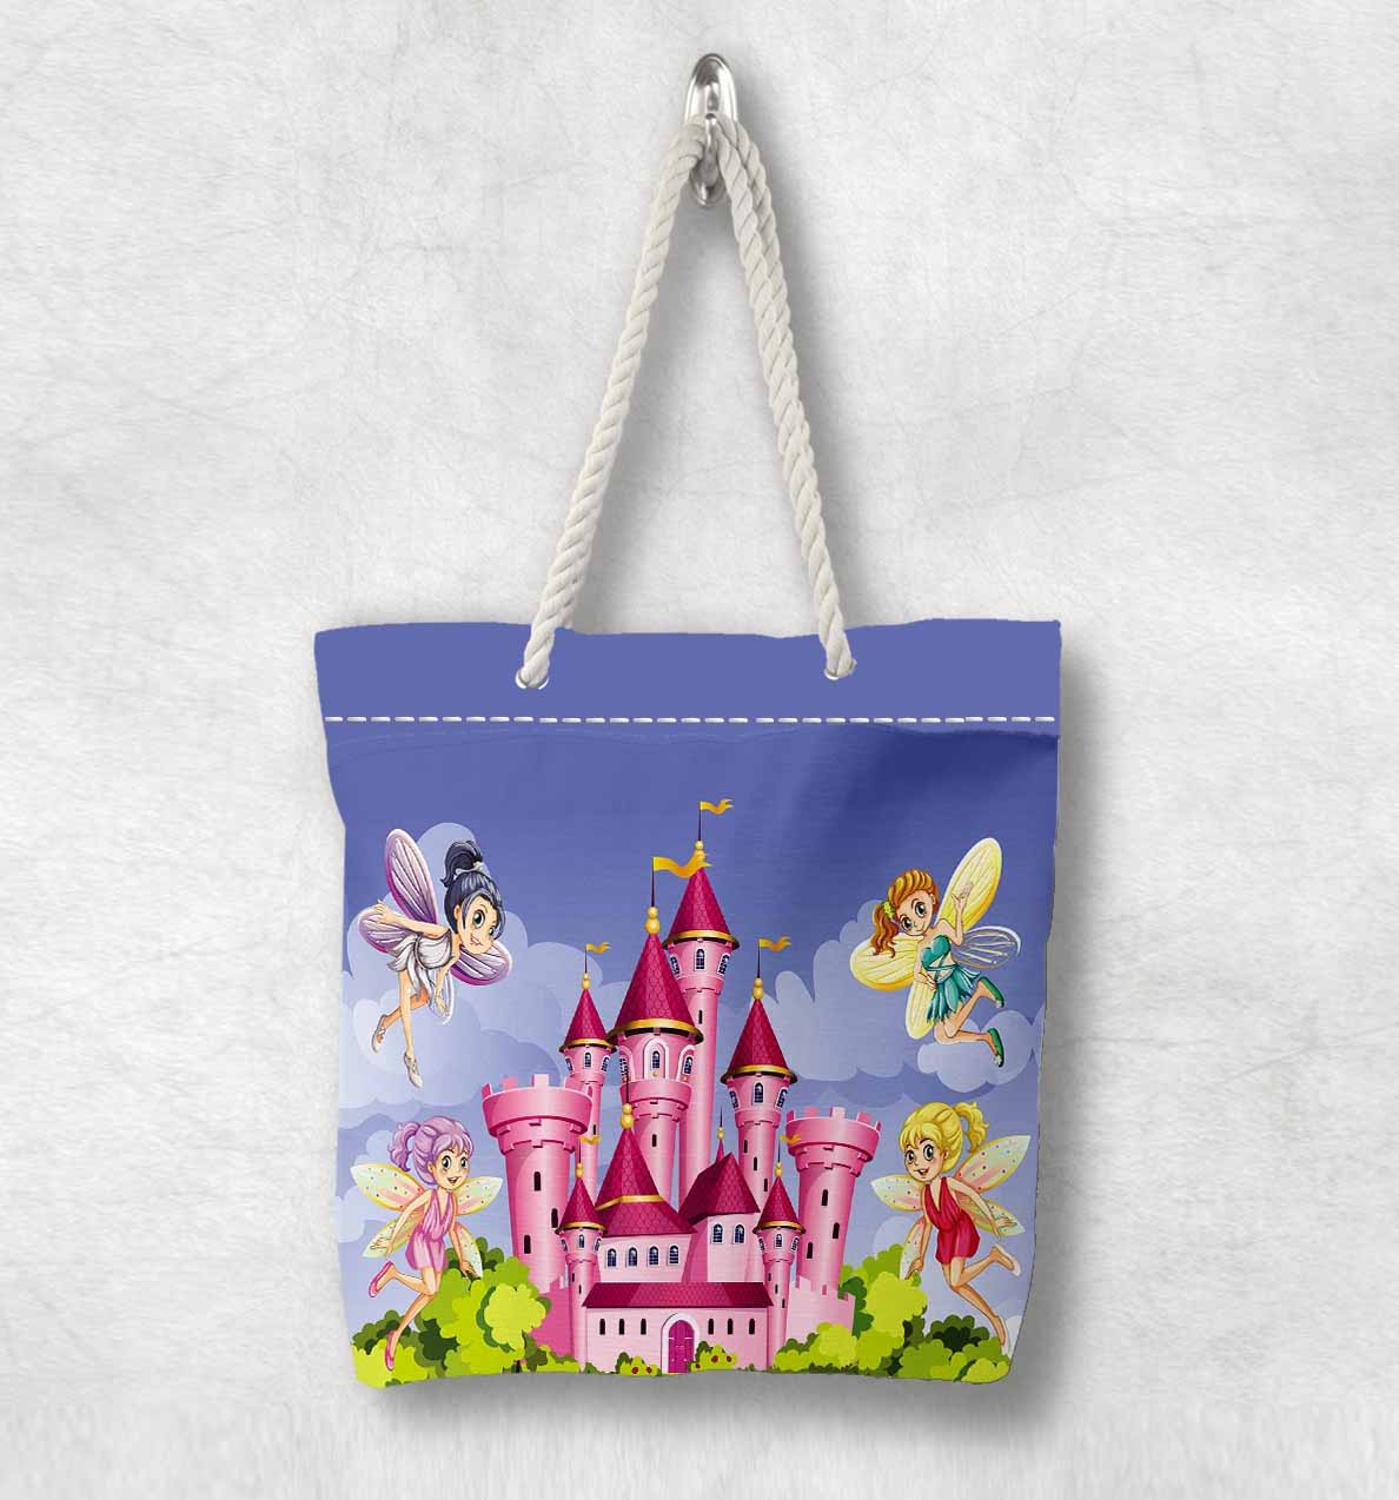 Else Pink Castle Fairy Girls Blue Sky Green Trees White Rope Handle Canvas Bag  Cartoon Print Zippered Tote Bag Shoulder Bag